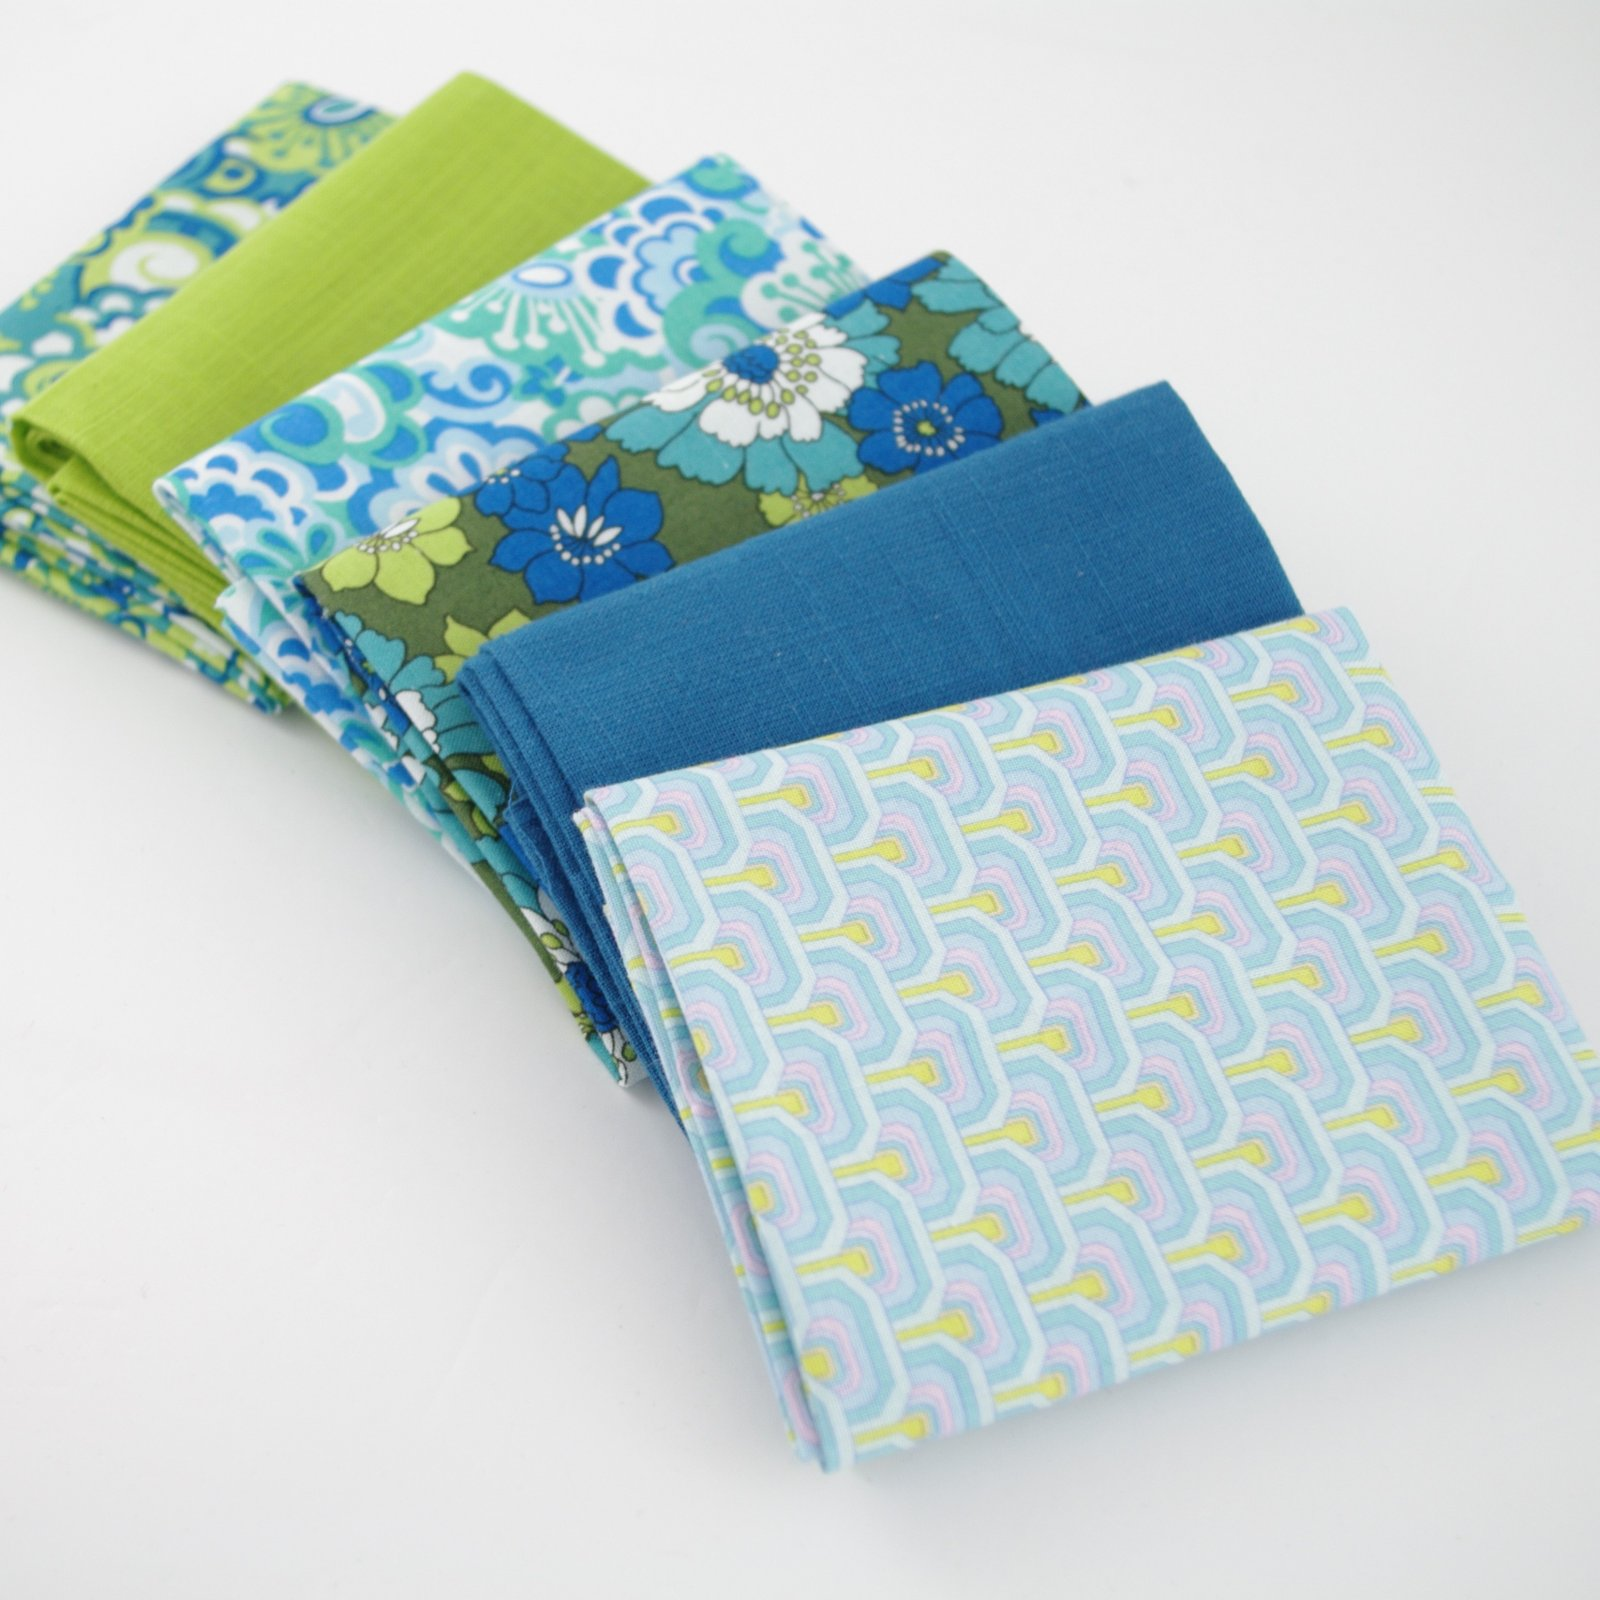 Cindy-rella's Assorted 6FQ Bundle - Margot Elena - Library of Flowers, Stories and Songbirds